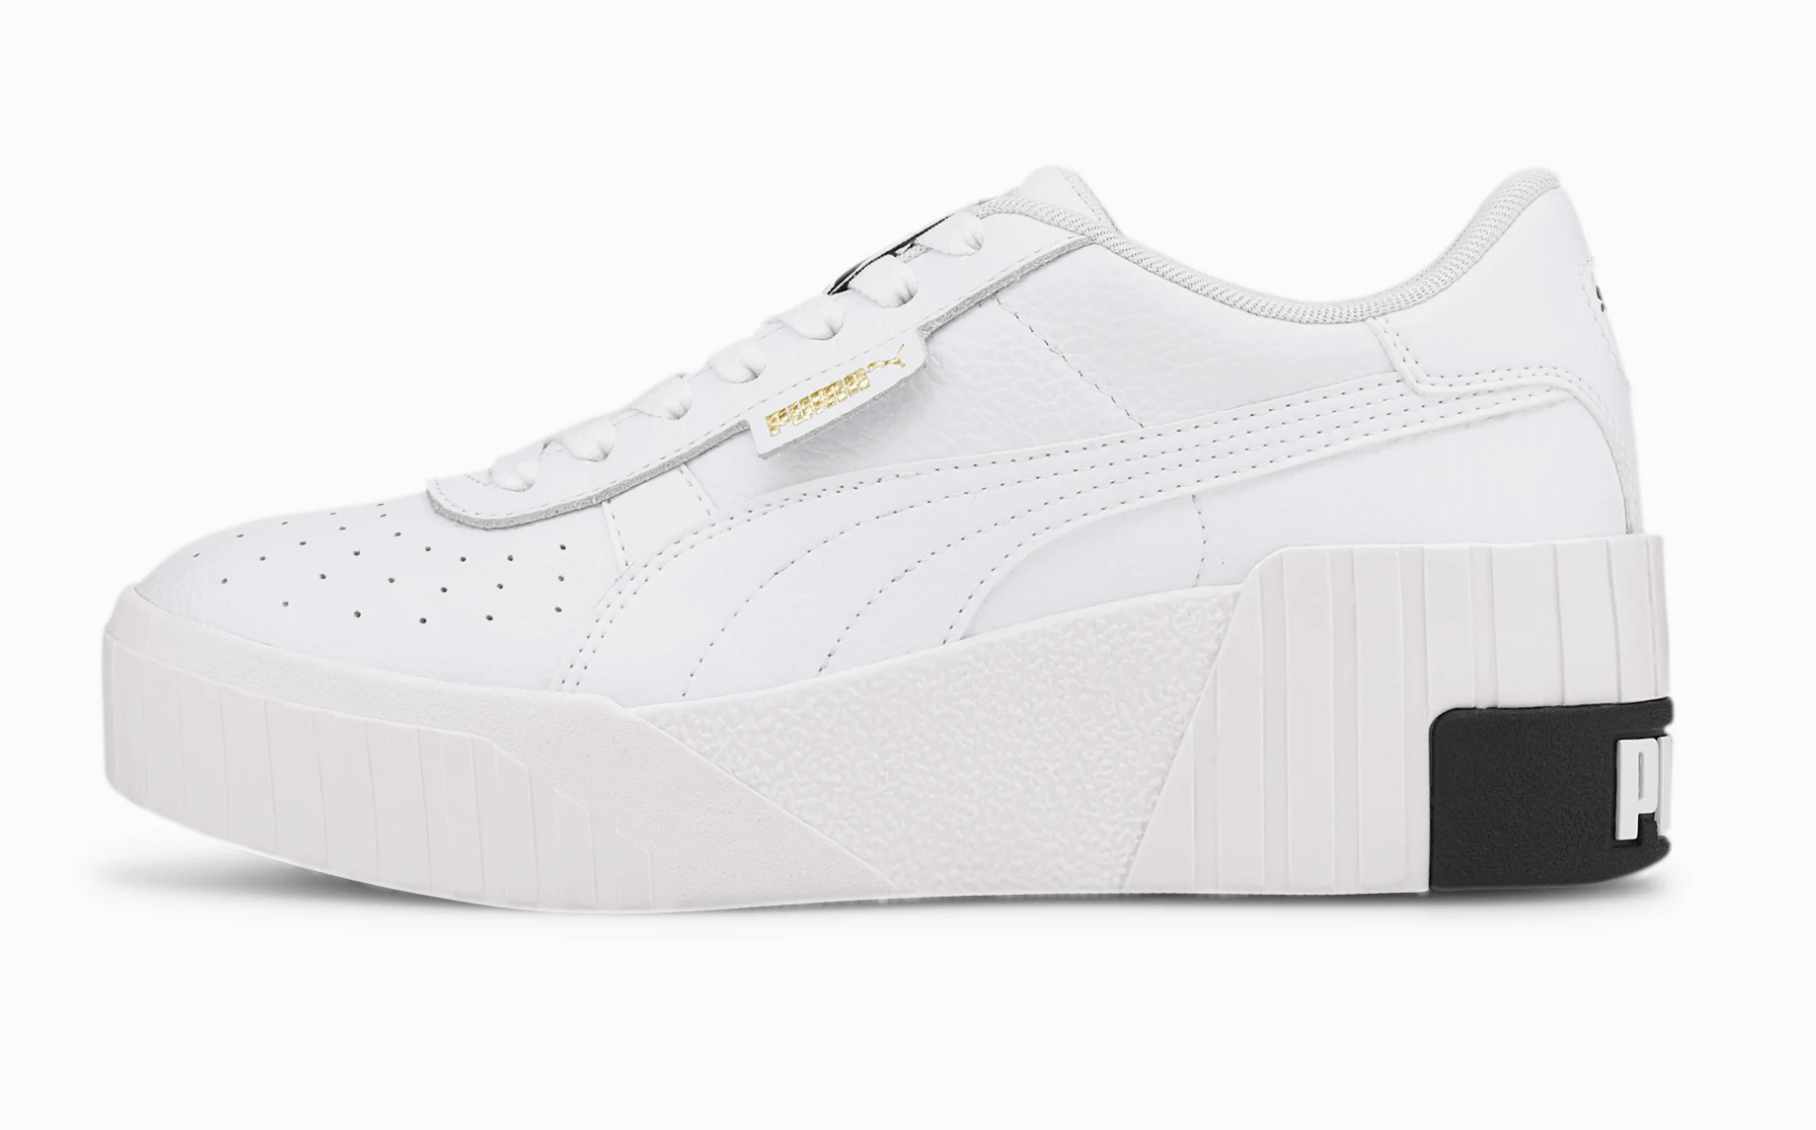 Puma Cali Wedge sneakers in white, with a synthetic leather upper and a midsole design featuring a wedge heel.